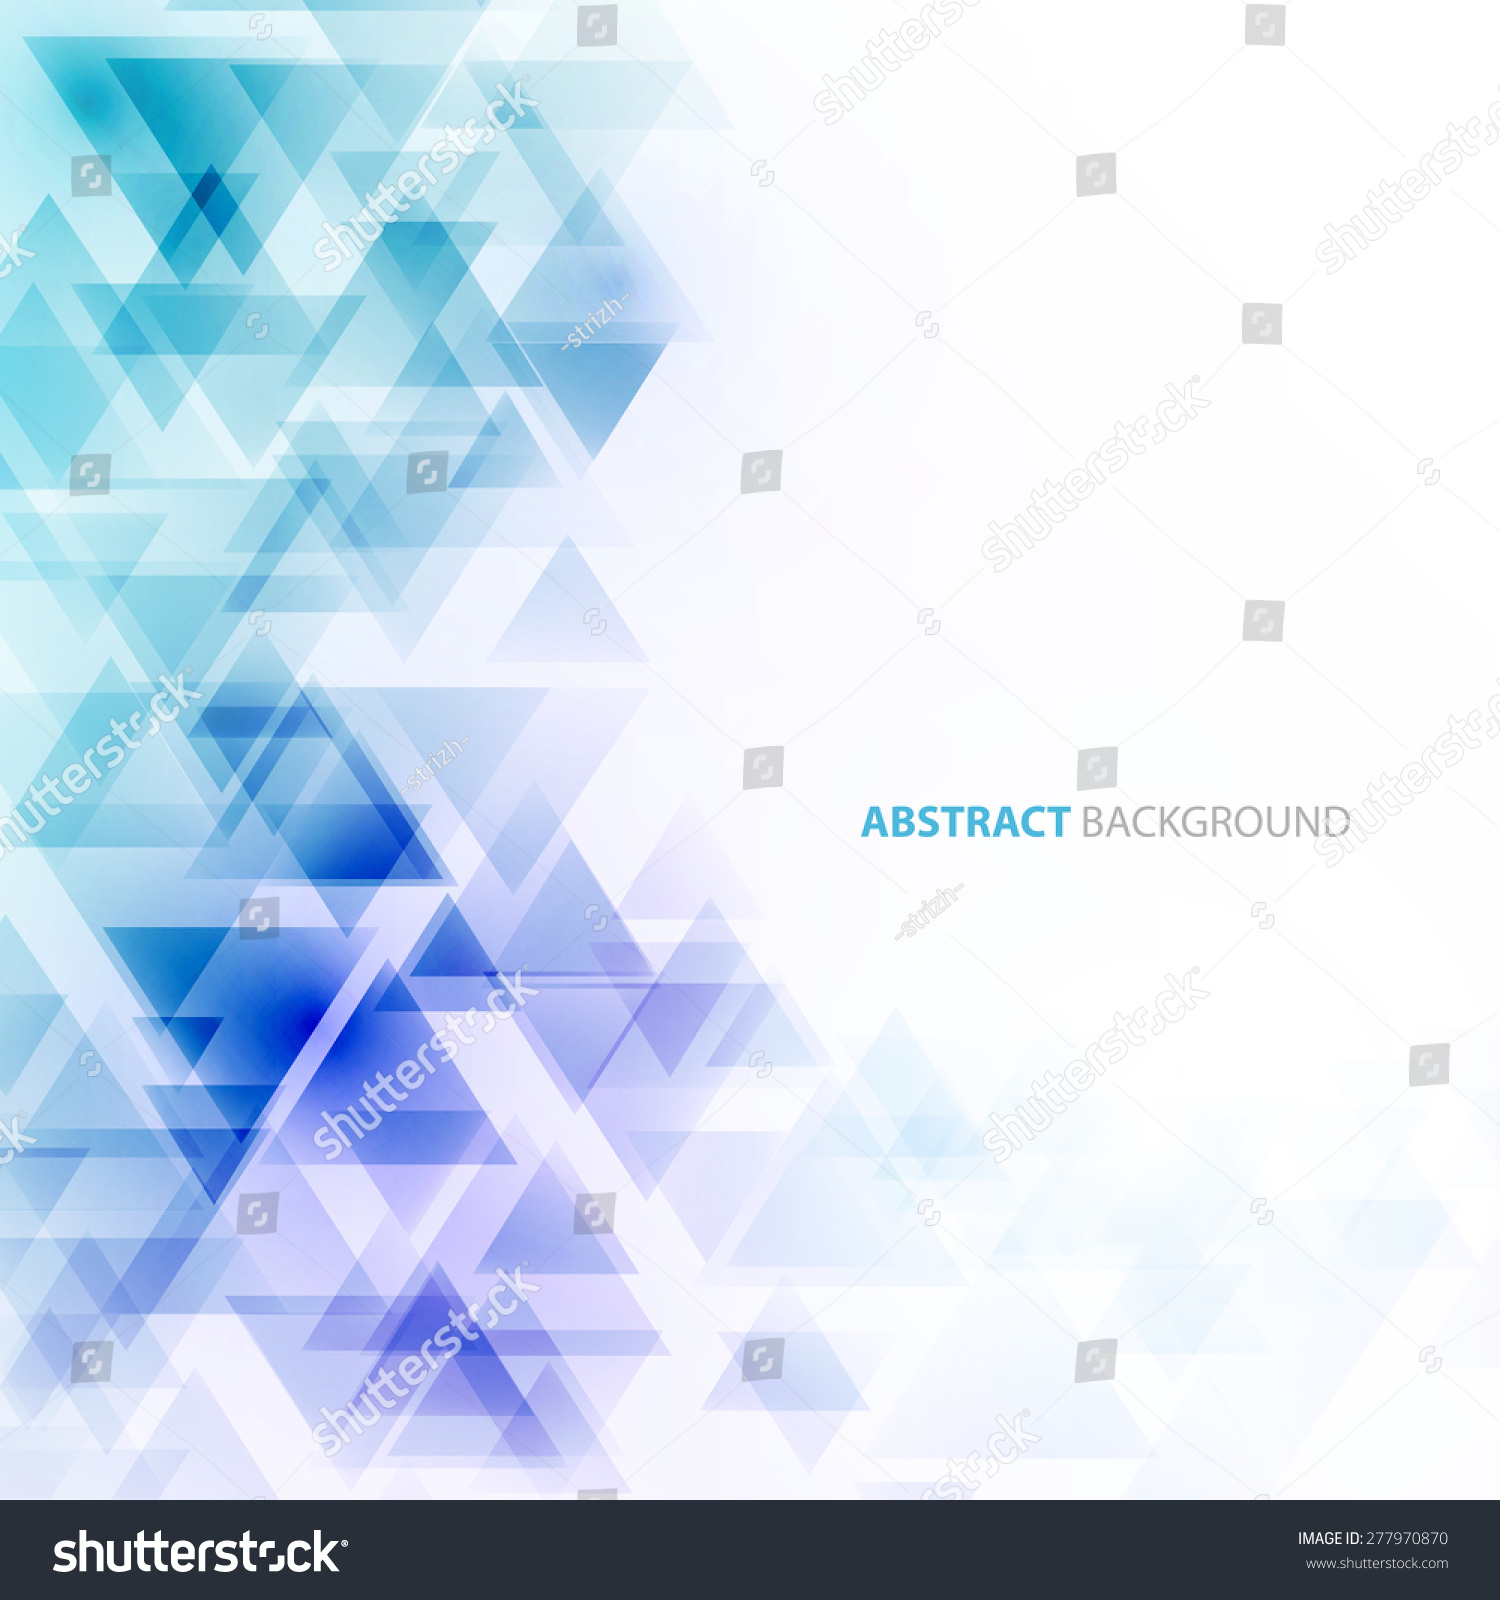 Abstract Geometric Background Transparent Triangles Vector Stock